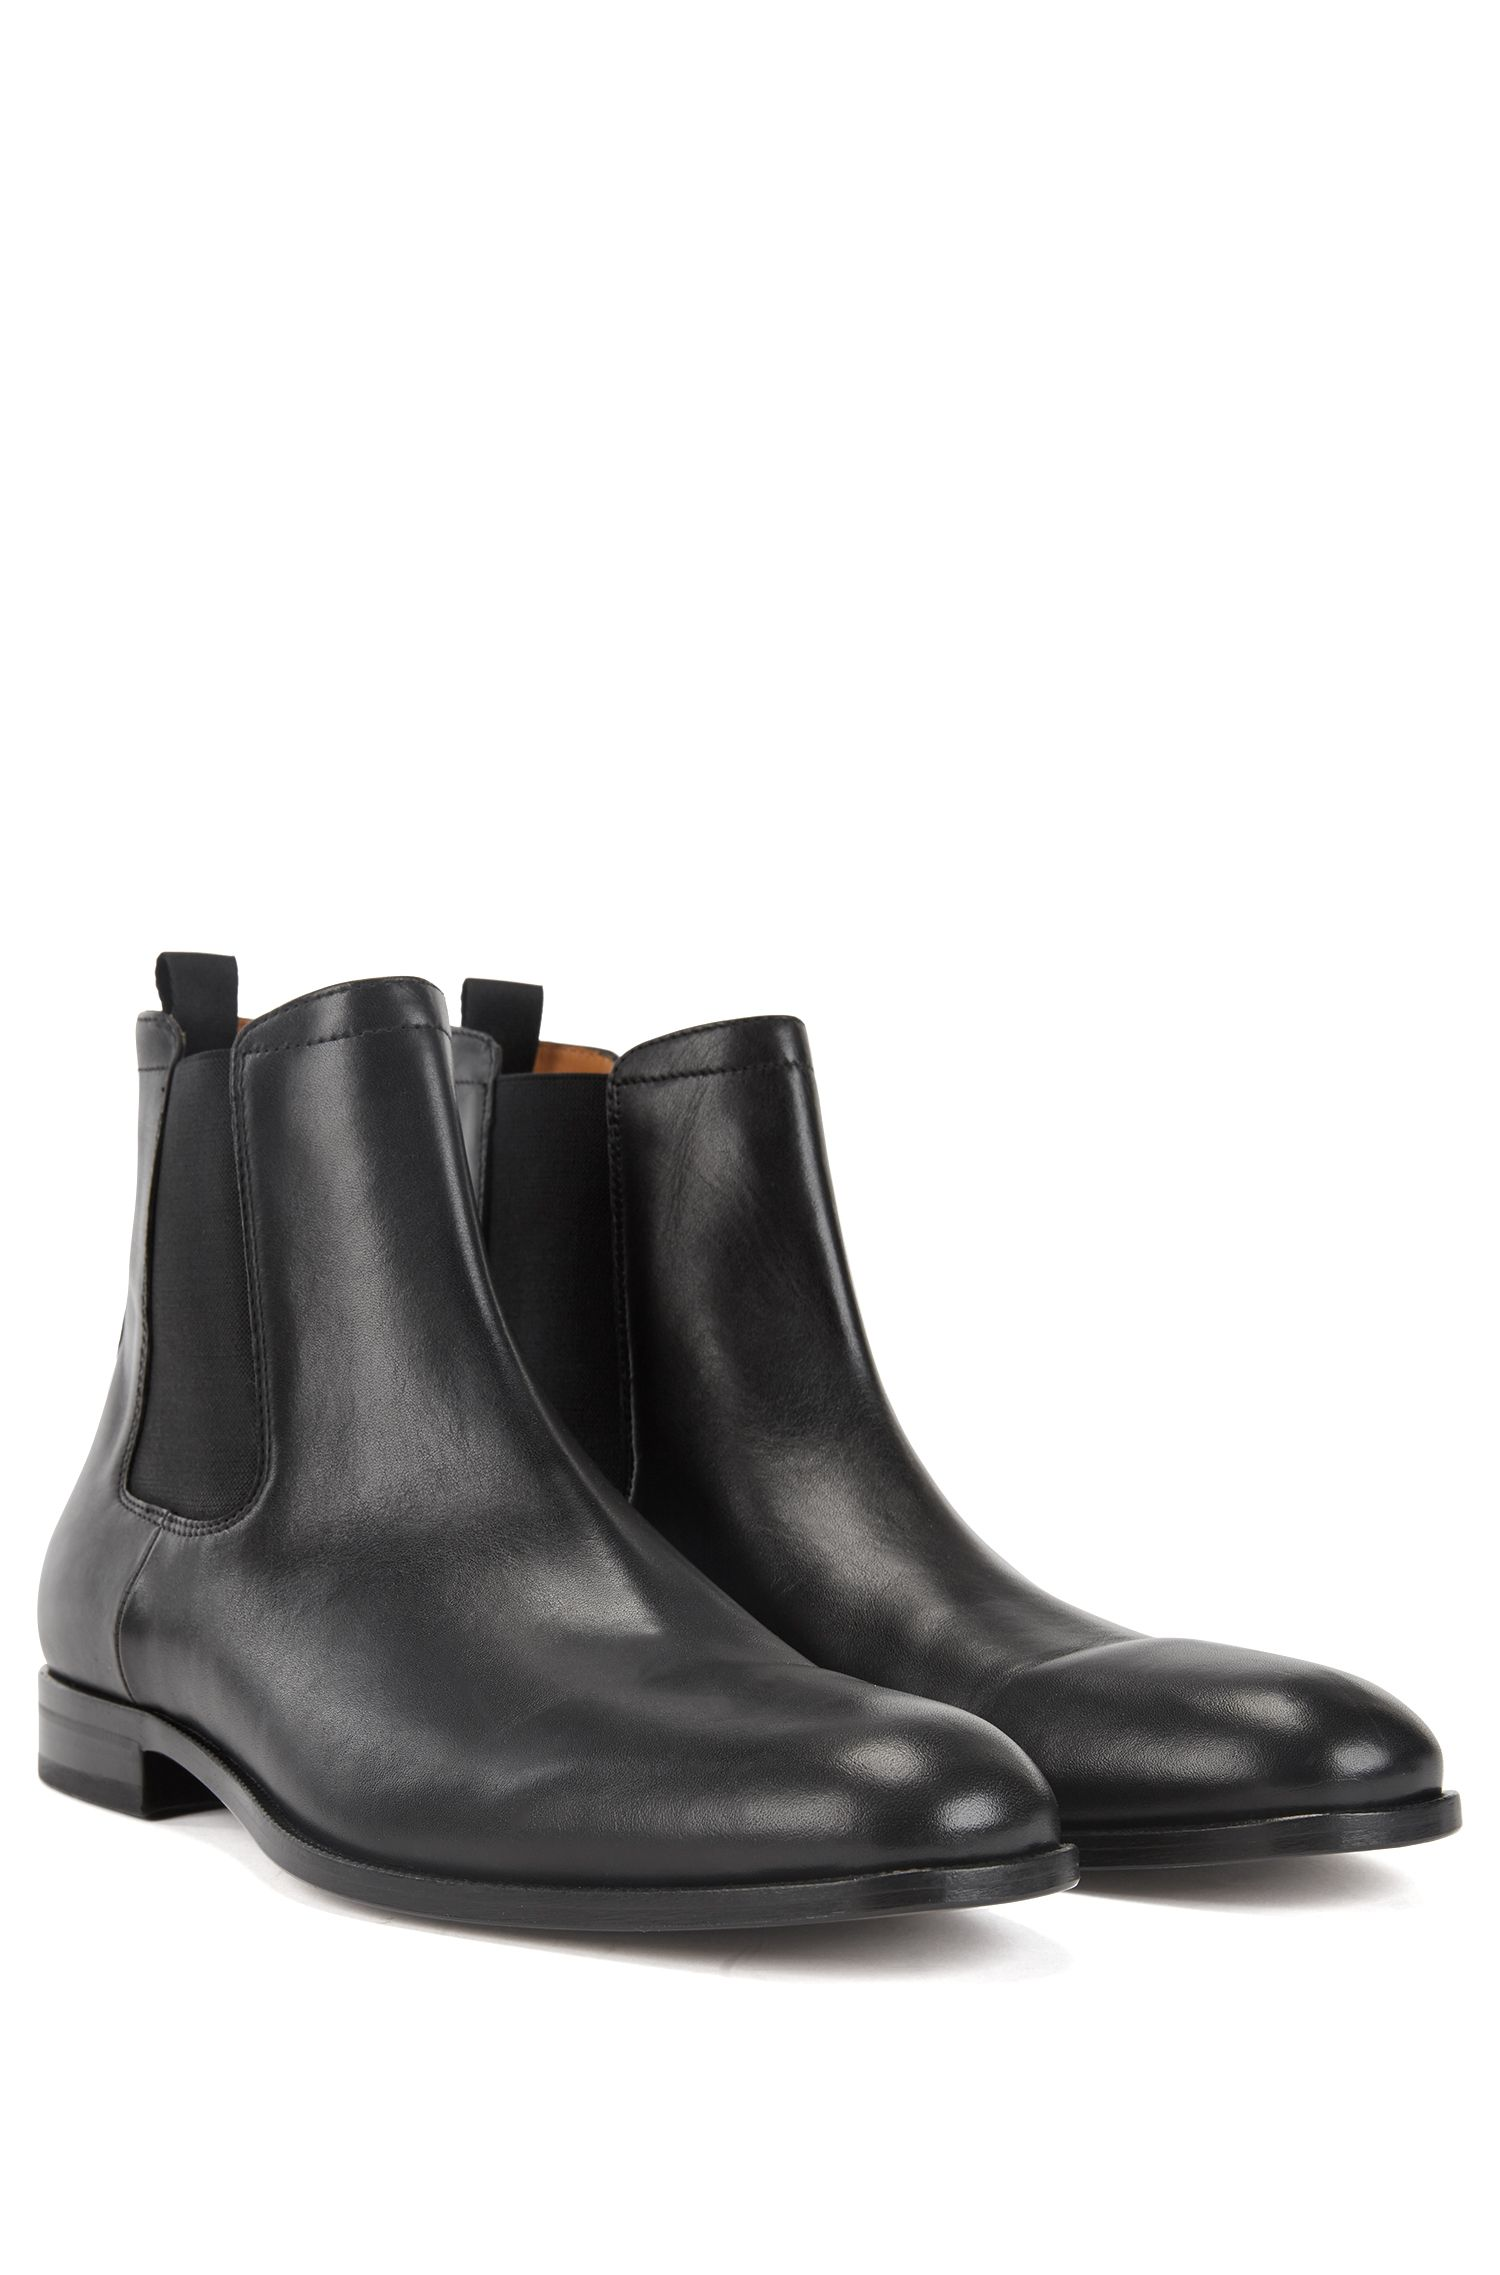 Italian-made Chelsea boots with calf-leather uppers, Black